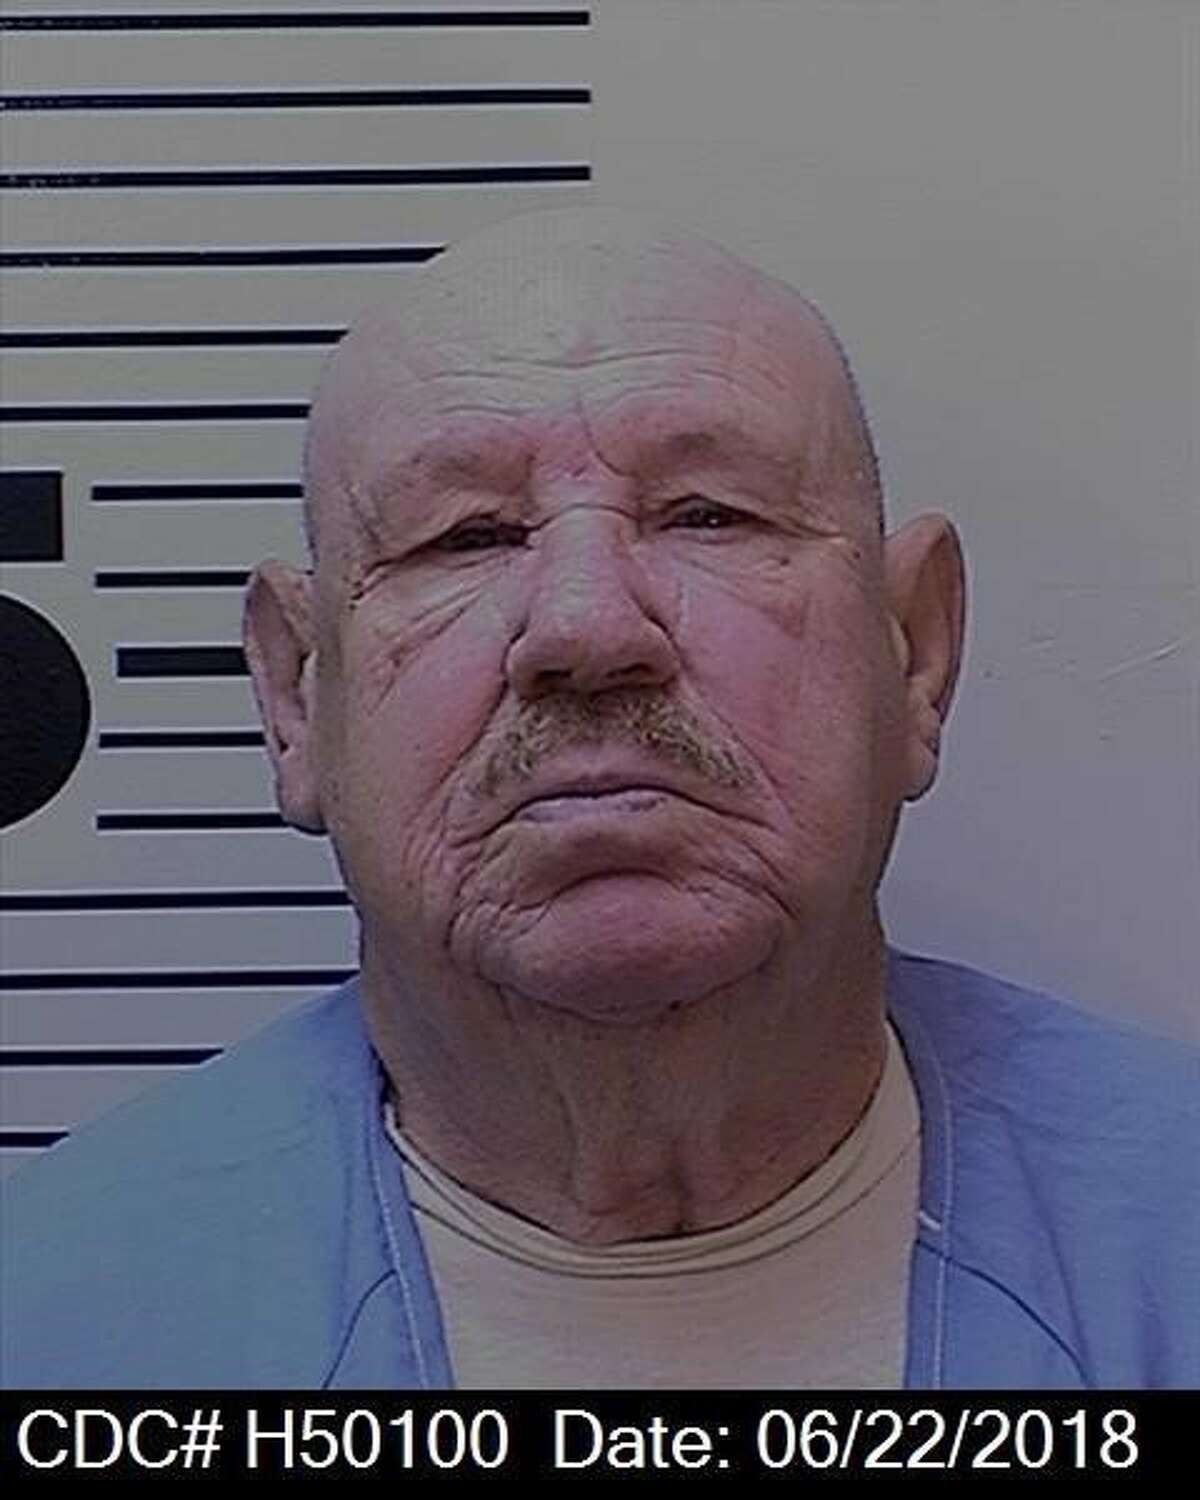 San Quentin condemned prisoner Richard Eugene Stitely, 71,was pronounced dead Wednesday, June 24, after being found unresponsive in his cell. While the cause of Stitely's death is still pending, it comes as a coronavirus outbreak overwhelms San Quentin, infecting more than 500 prisoners.